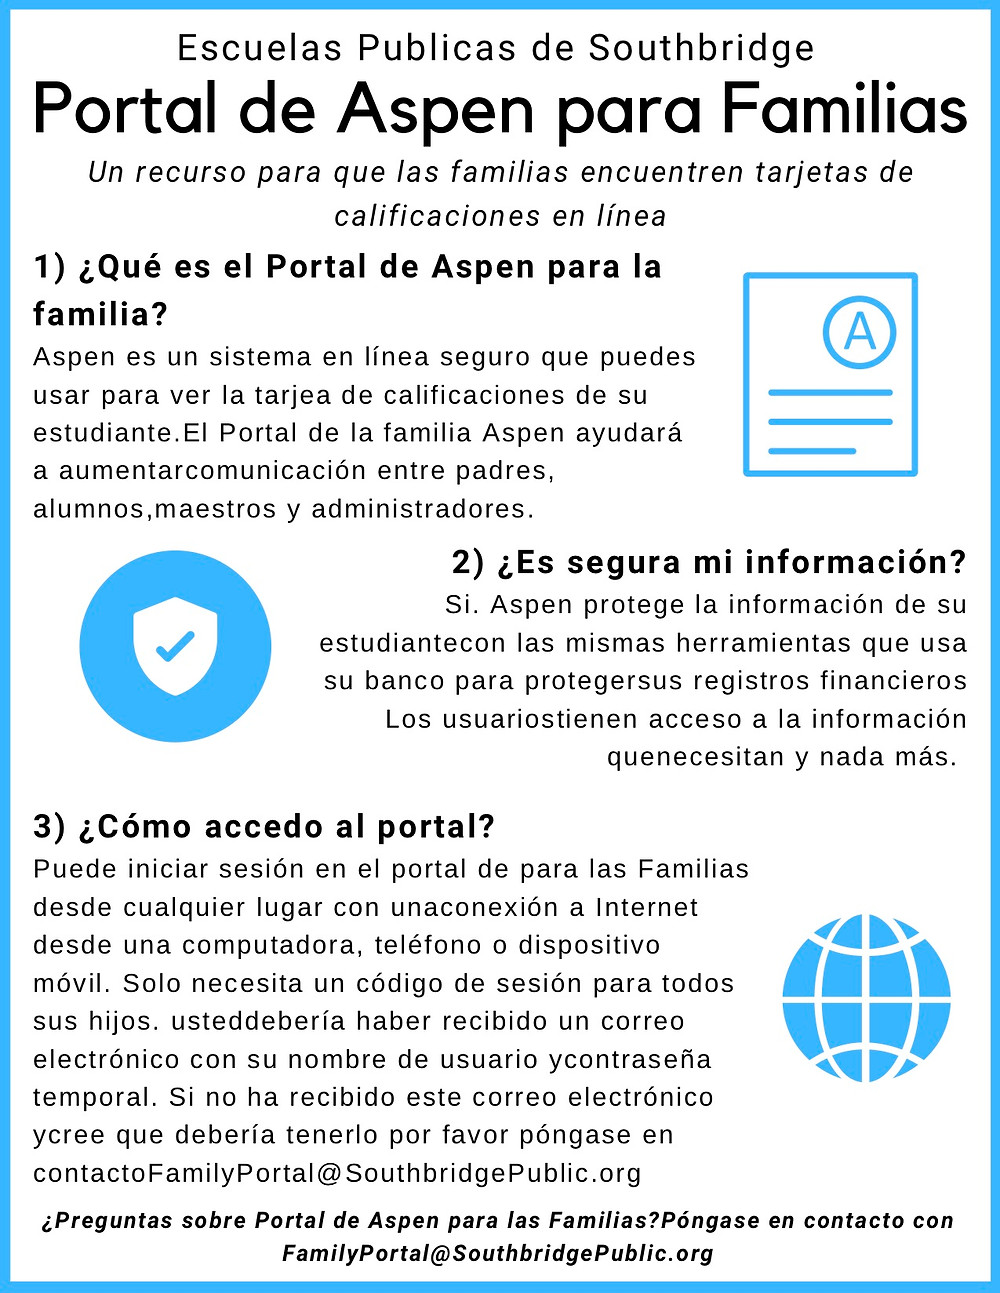 Informational flyer about the Aspen Family Portal in Spanish. Information on this flyer is also available by clicking the image.